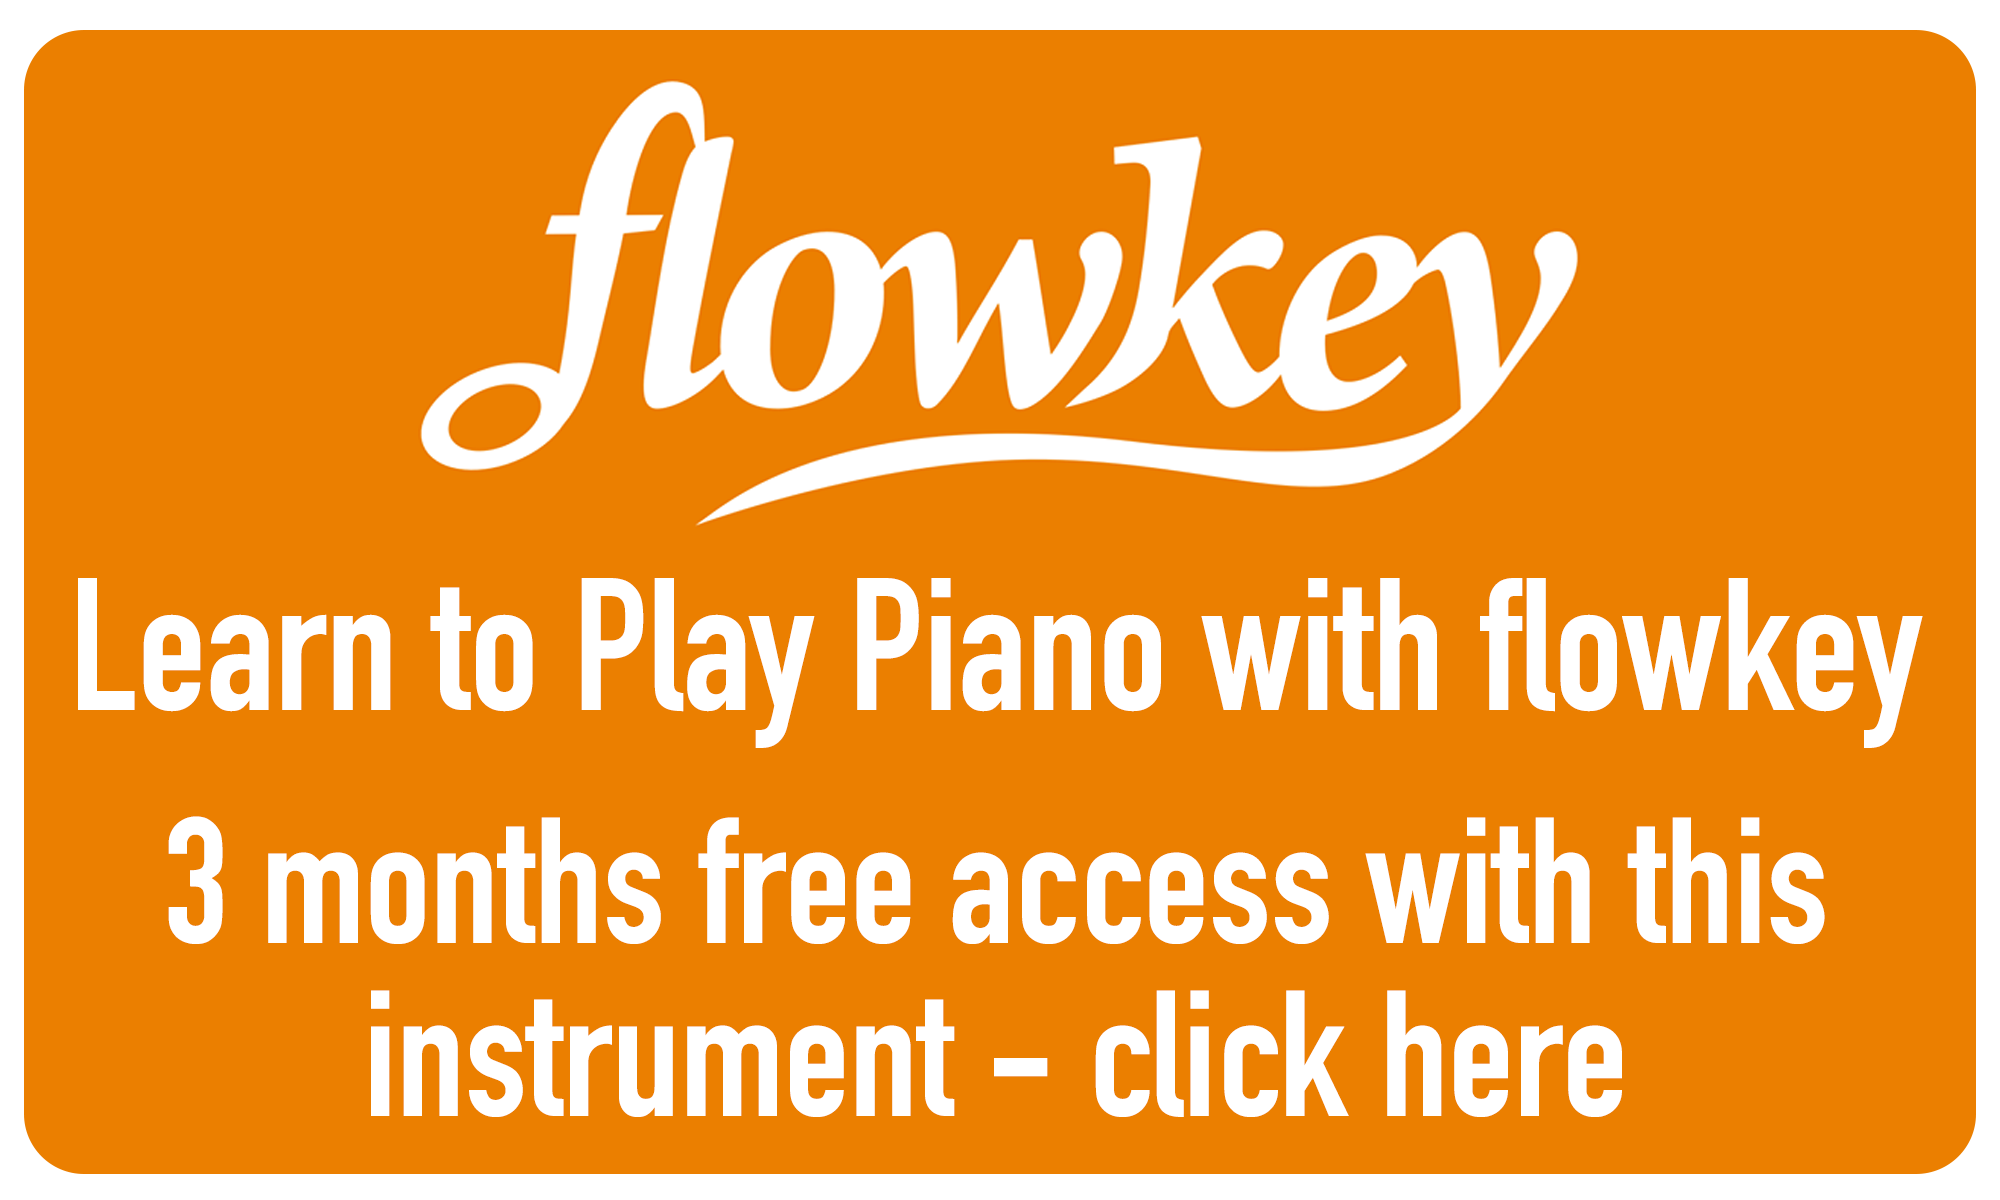 3 months free access to Flowkey - click here